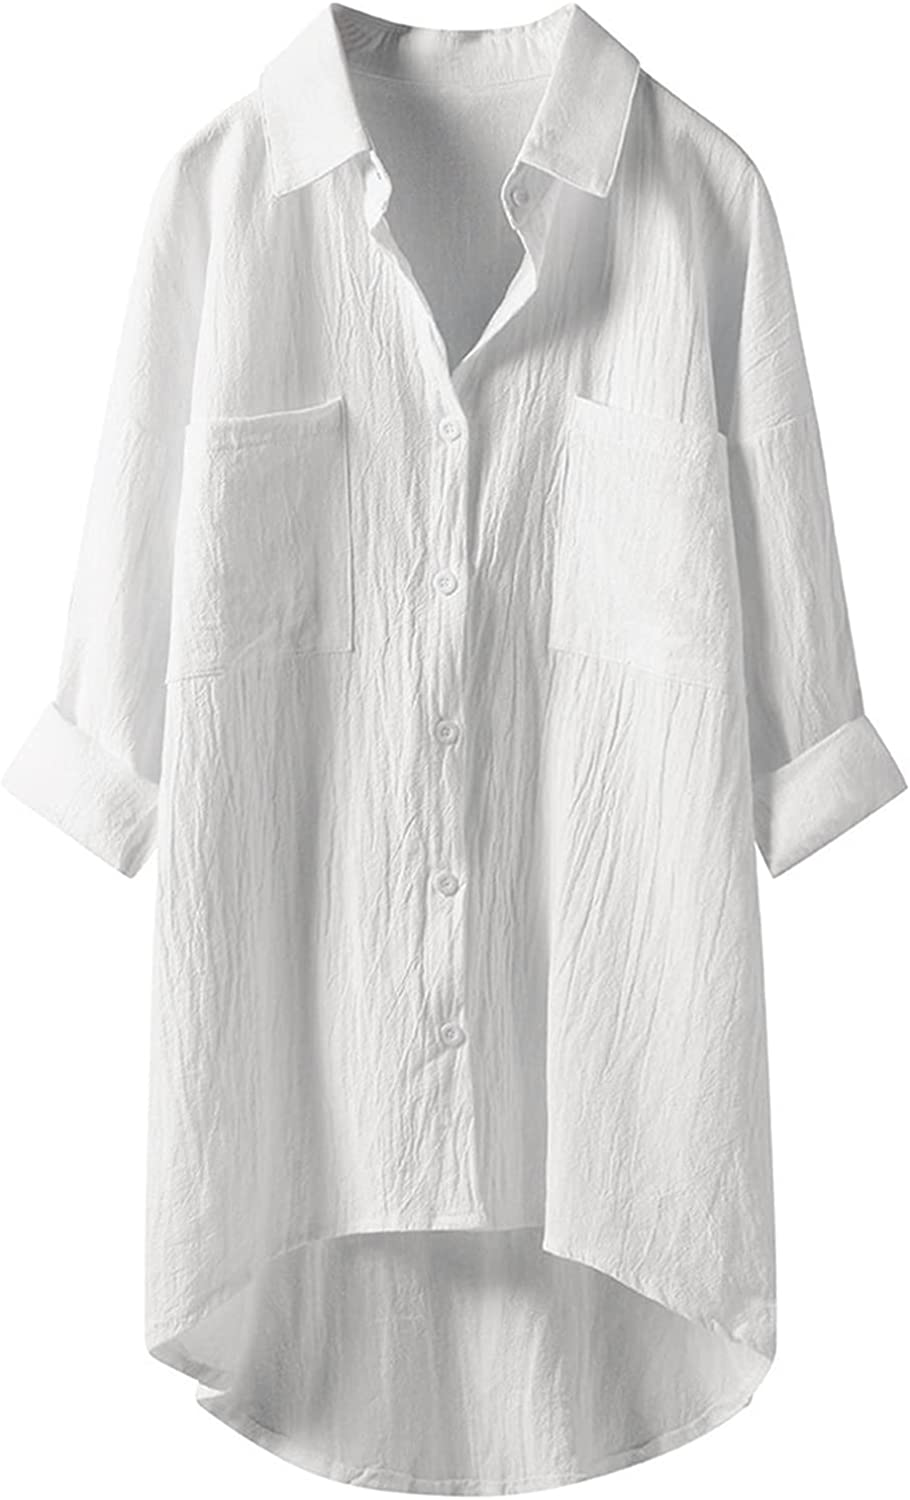 Women's Linen Blouse High Low Shirt Roll-Up Sleeve Tops Plus Size Button Down Oversized Tunic Shirt with Pockets(M-5XL)